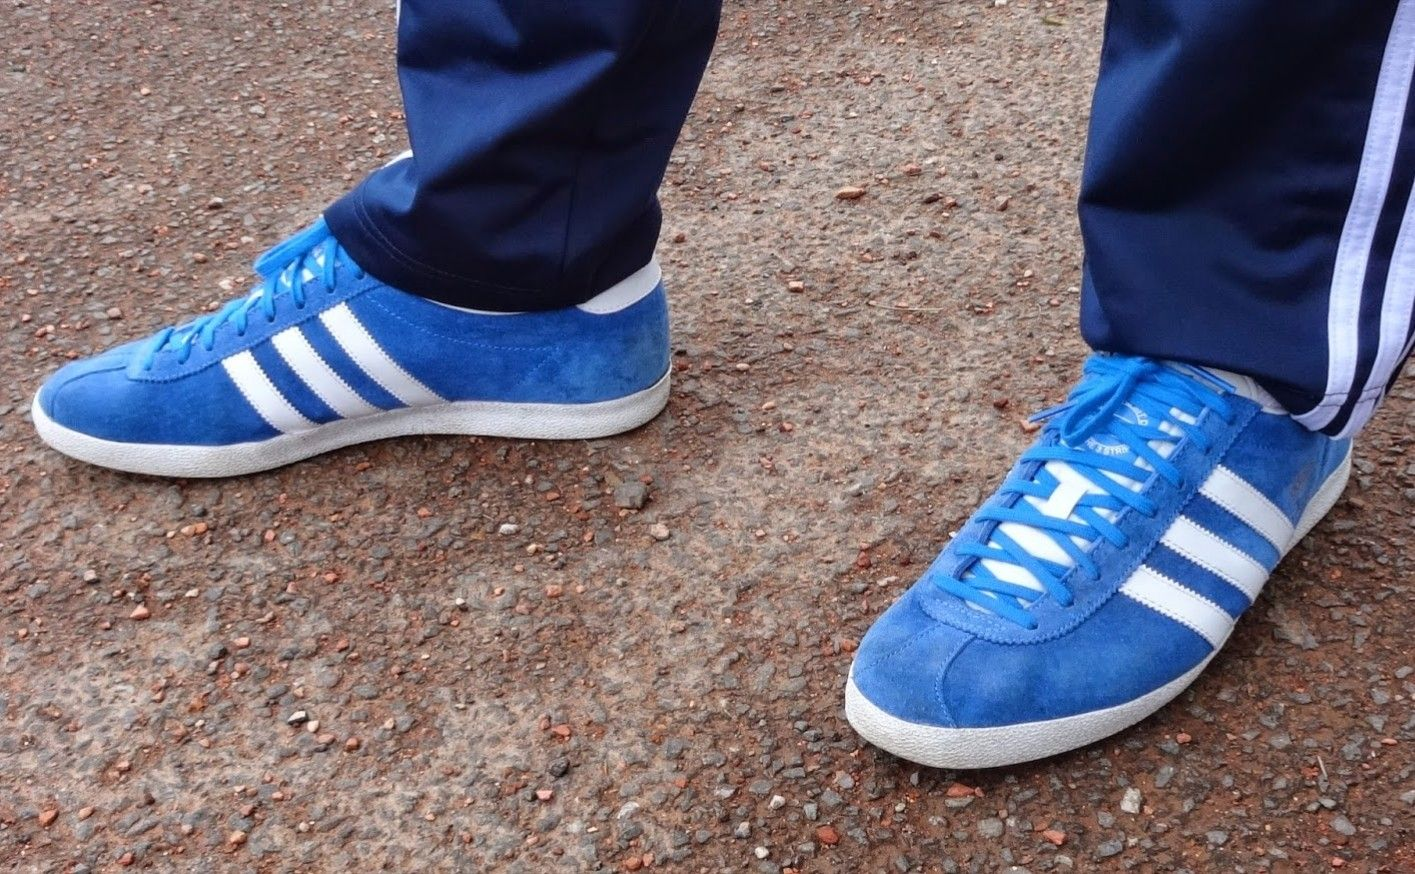 huge selection of 8525b 7d5a0 Adidas Gazelle Bluebird and white     on feet on the street